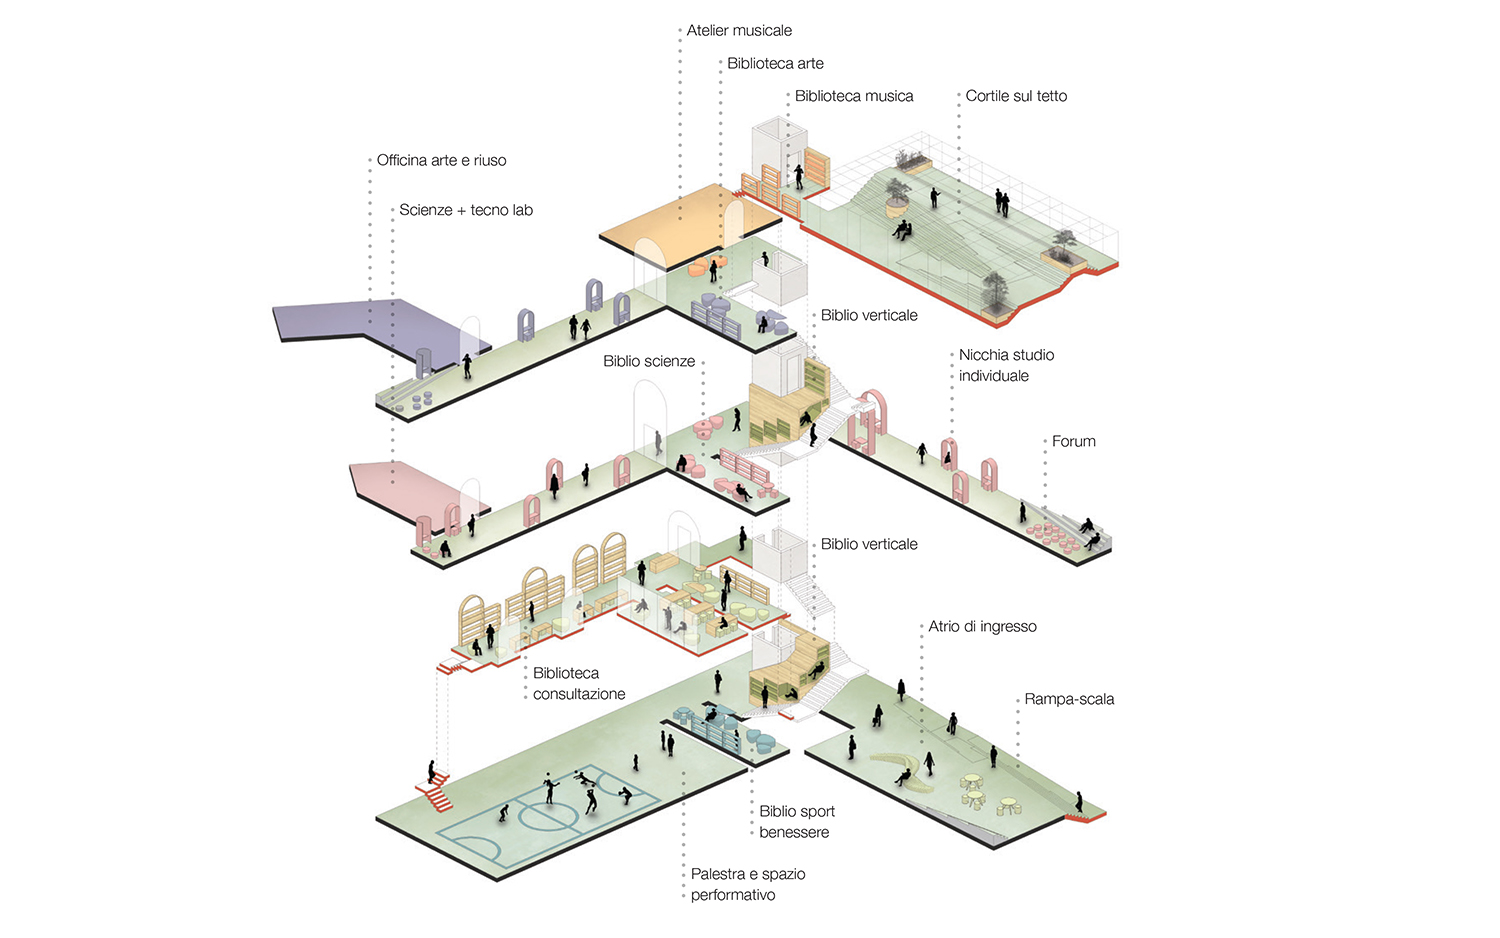 Public and shared spaces Marco Giai Via